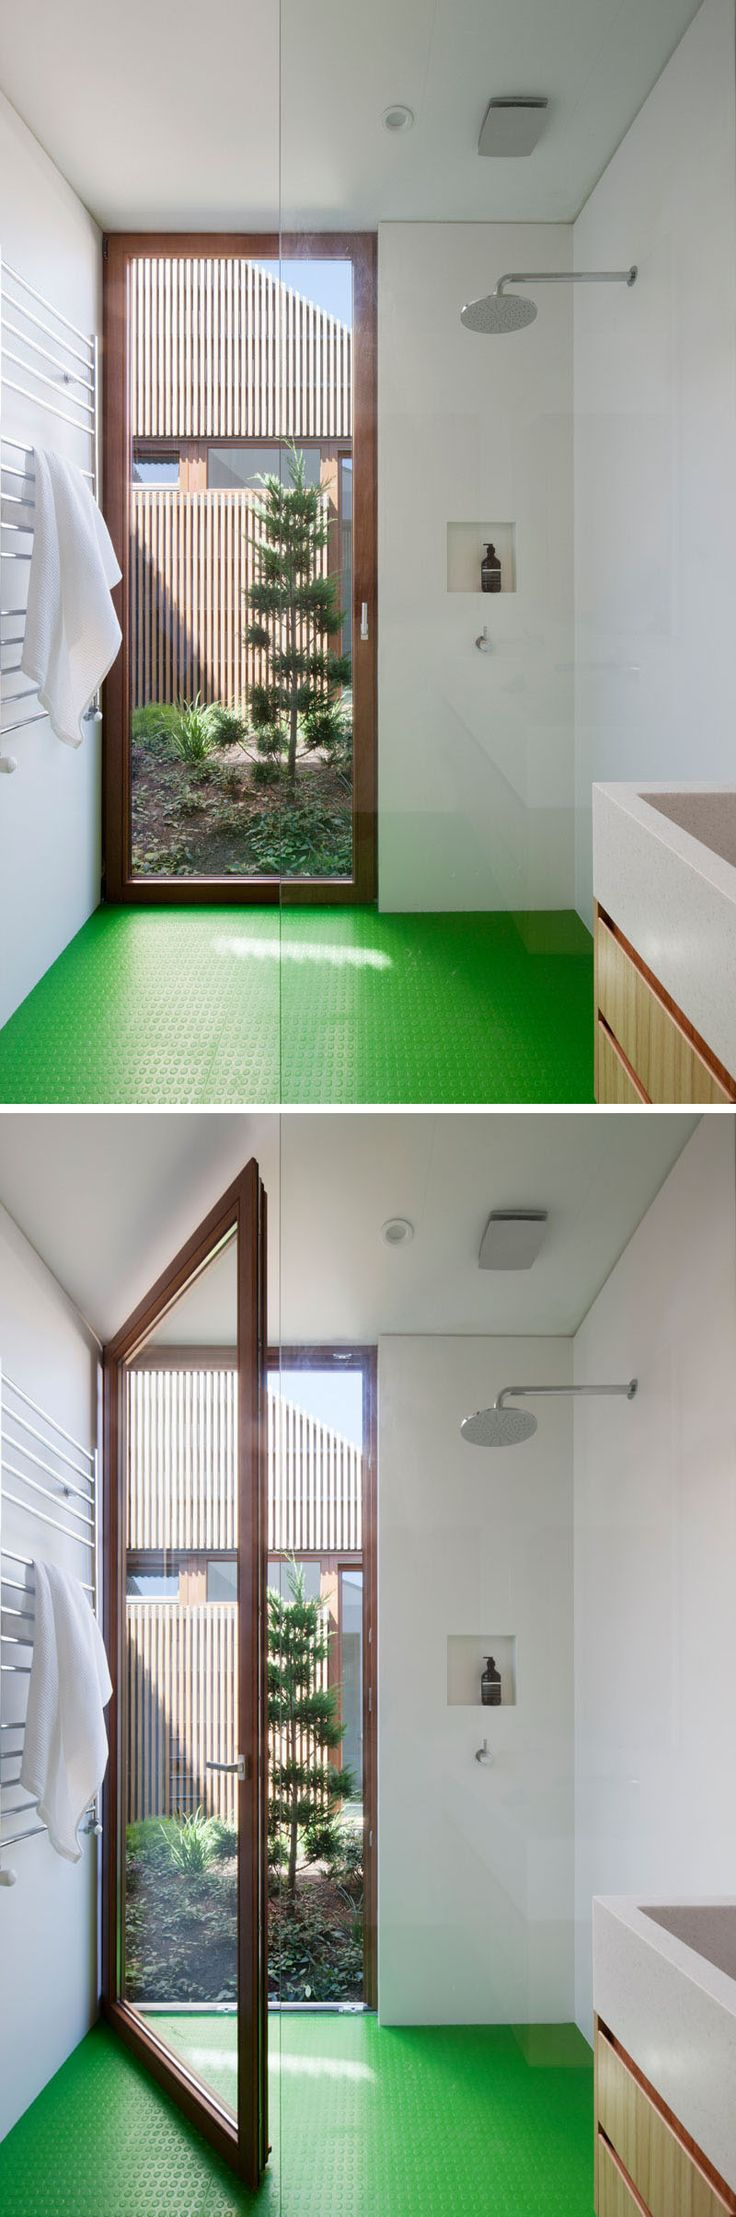 In this modern bathroom, there's bright green flooring and built-in shelving in the shower, and a floor-to-ceiling wood framed door that opens off the shower into the courtyard just outside.